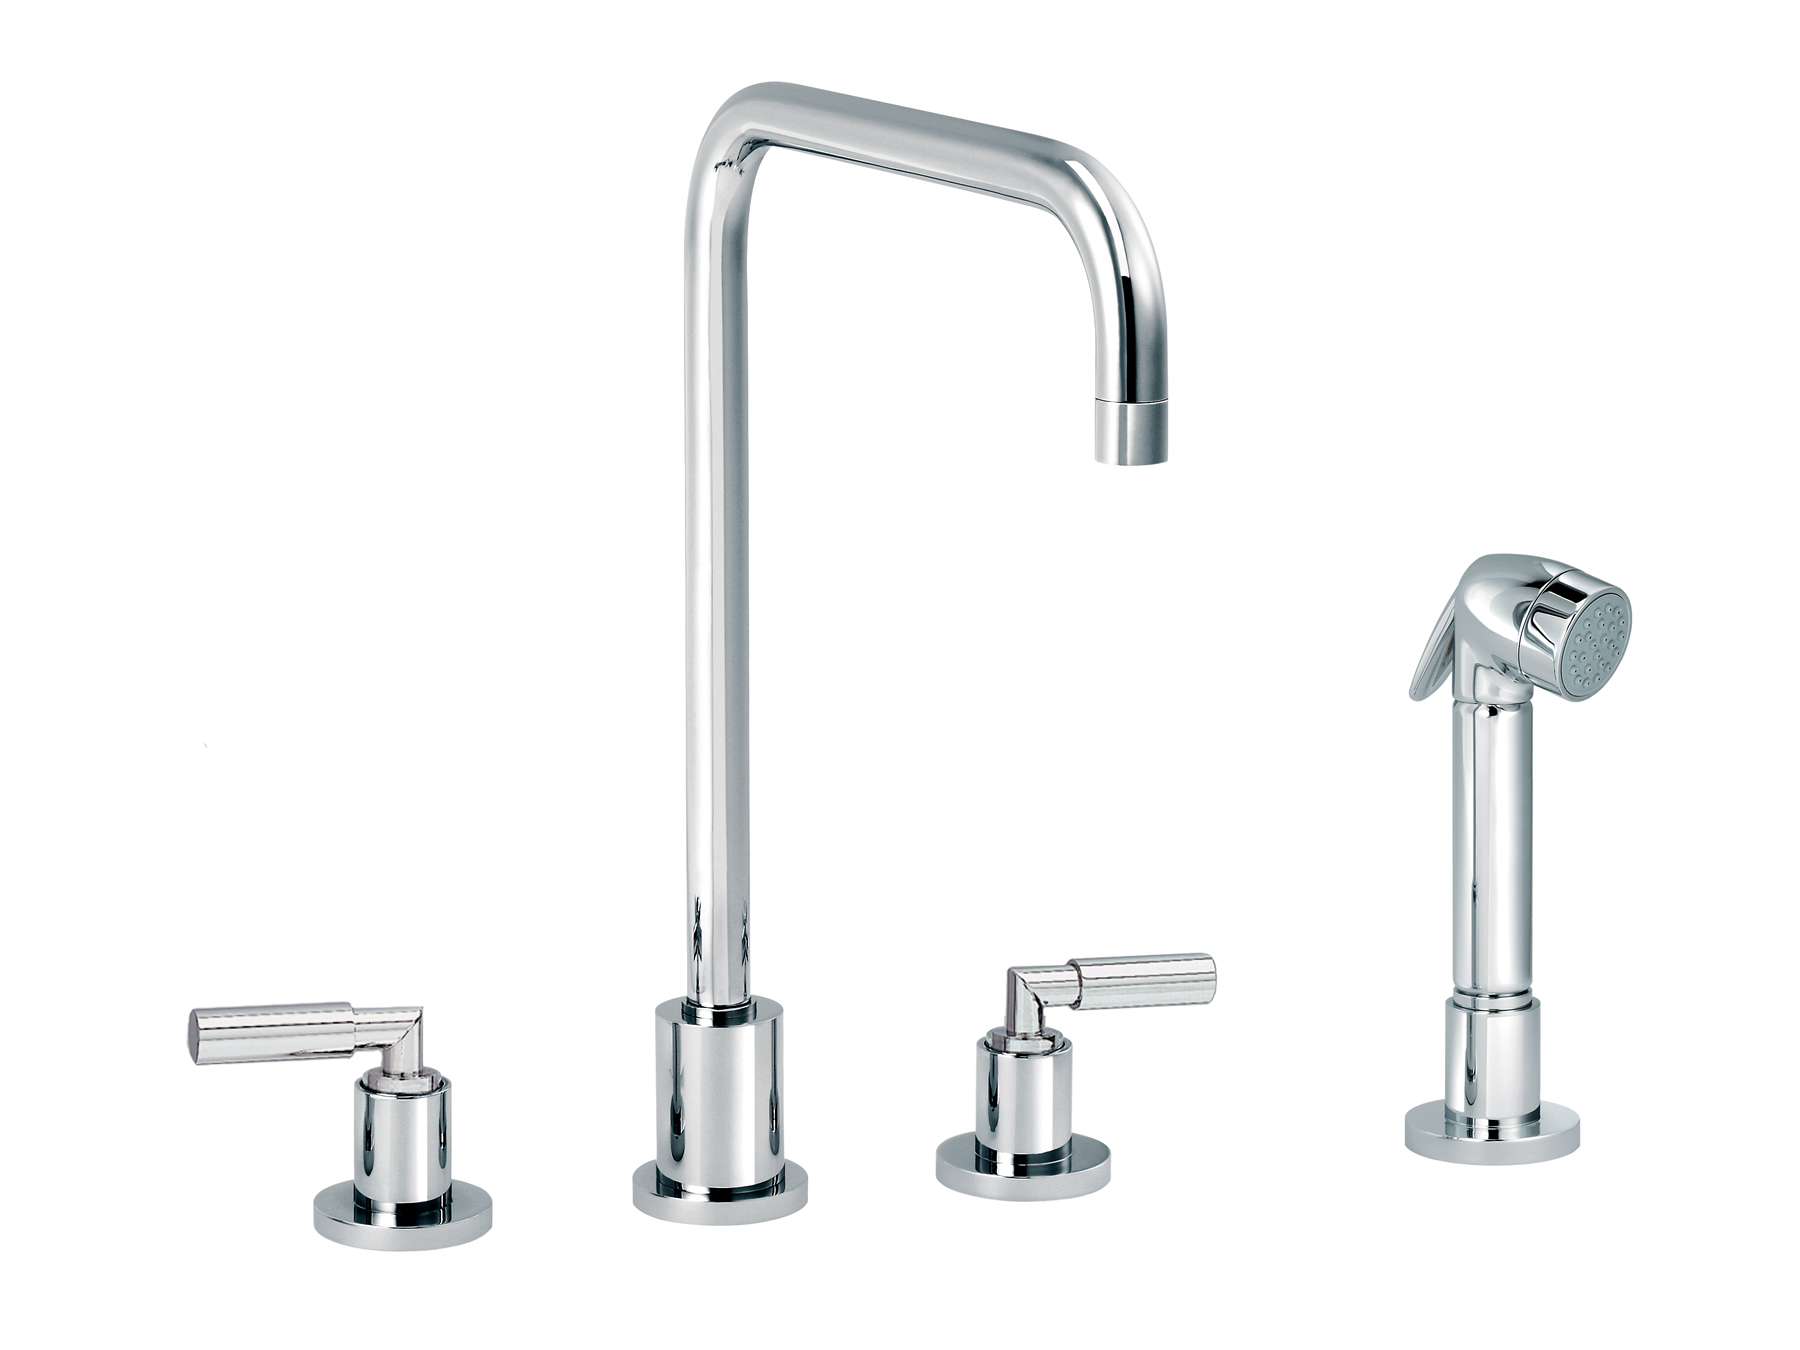 3-hole kitchen mixer, handshower, spout in U 4091.--.29